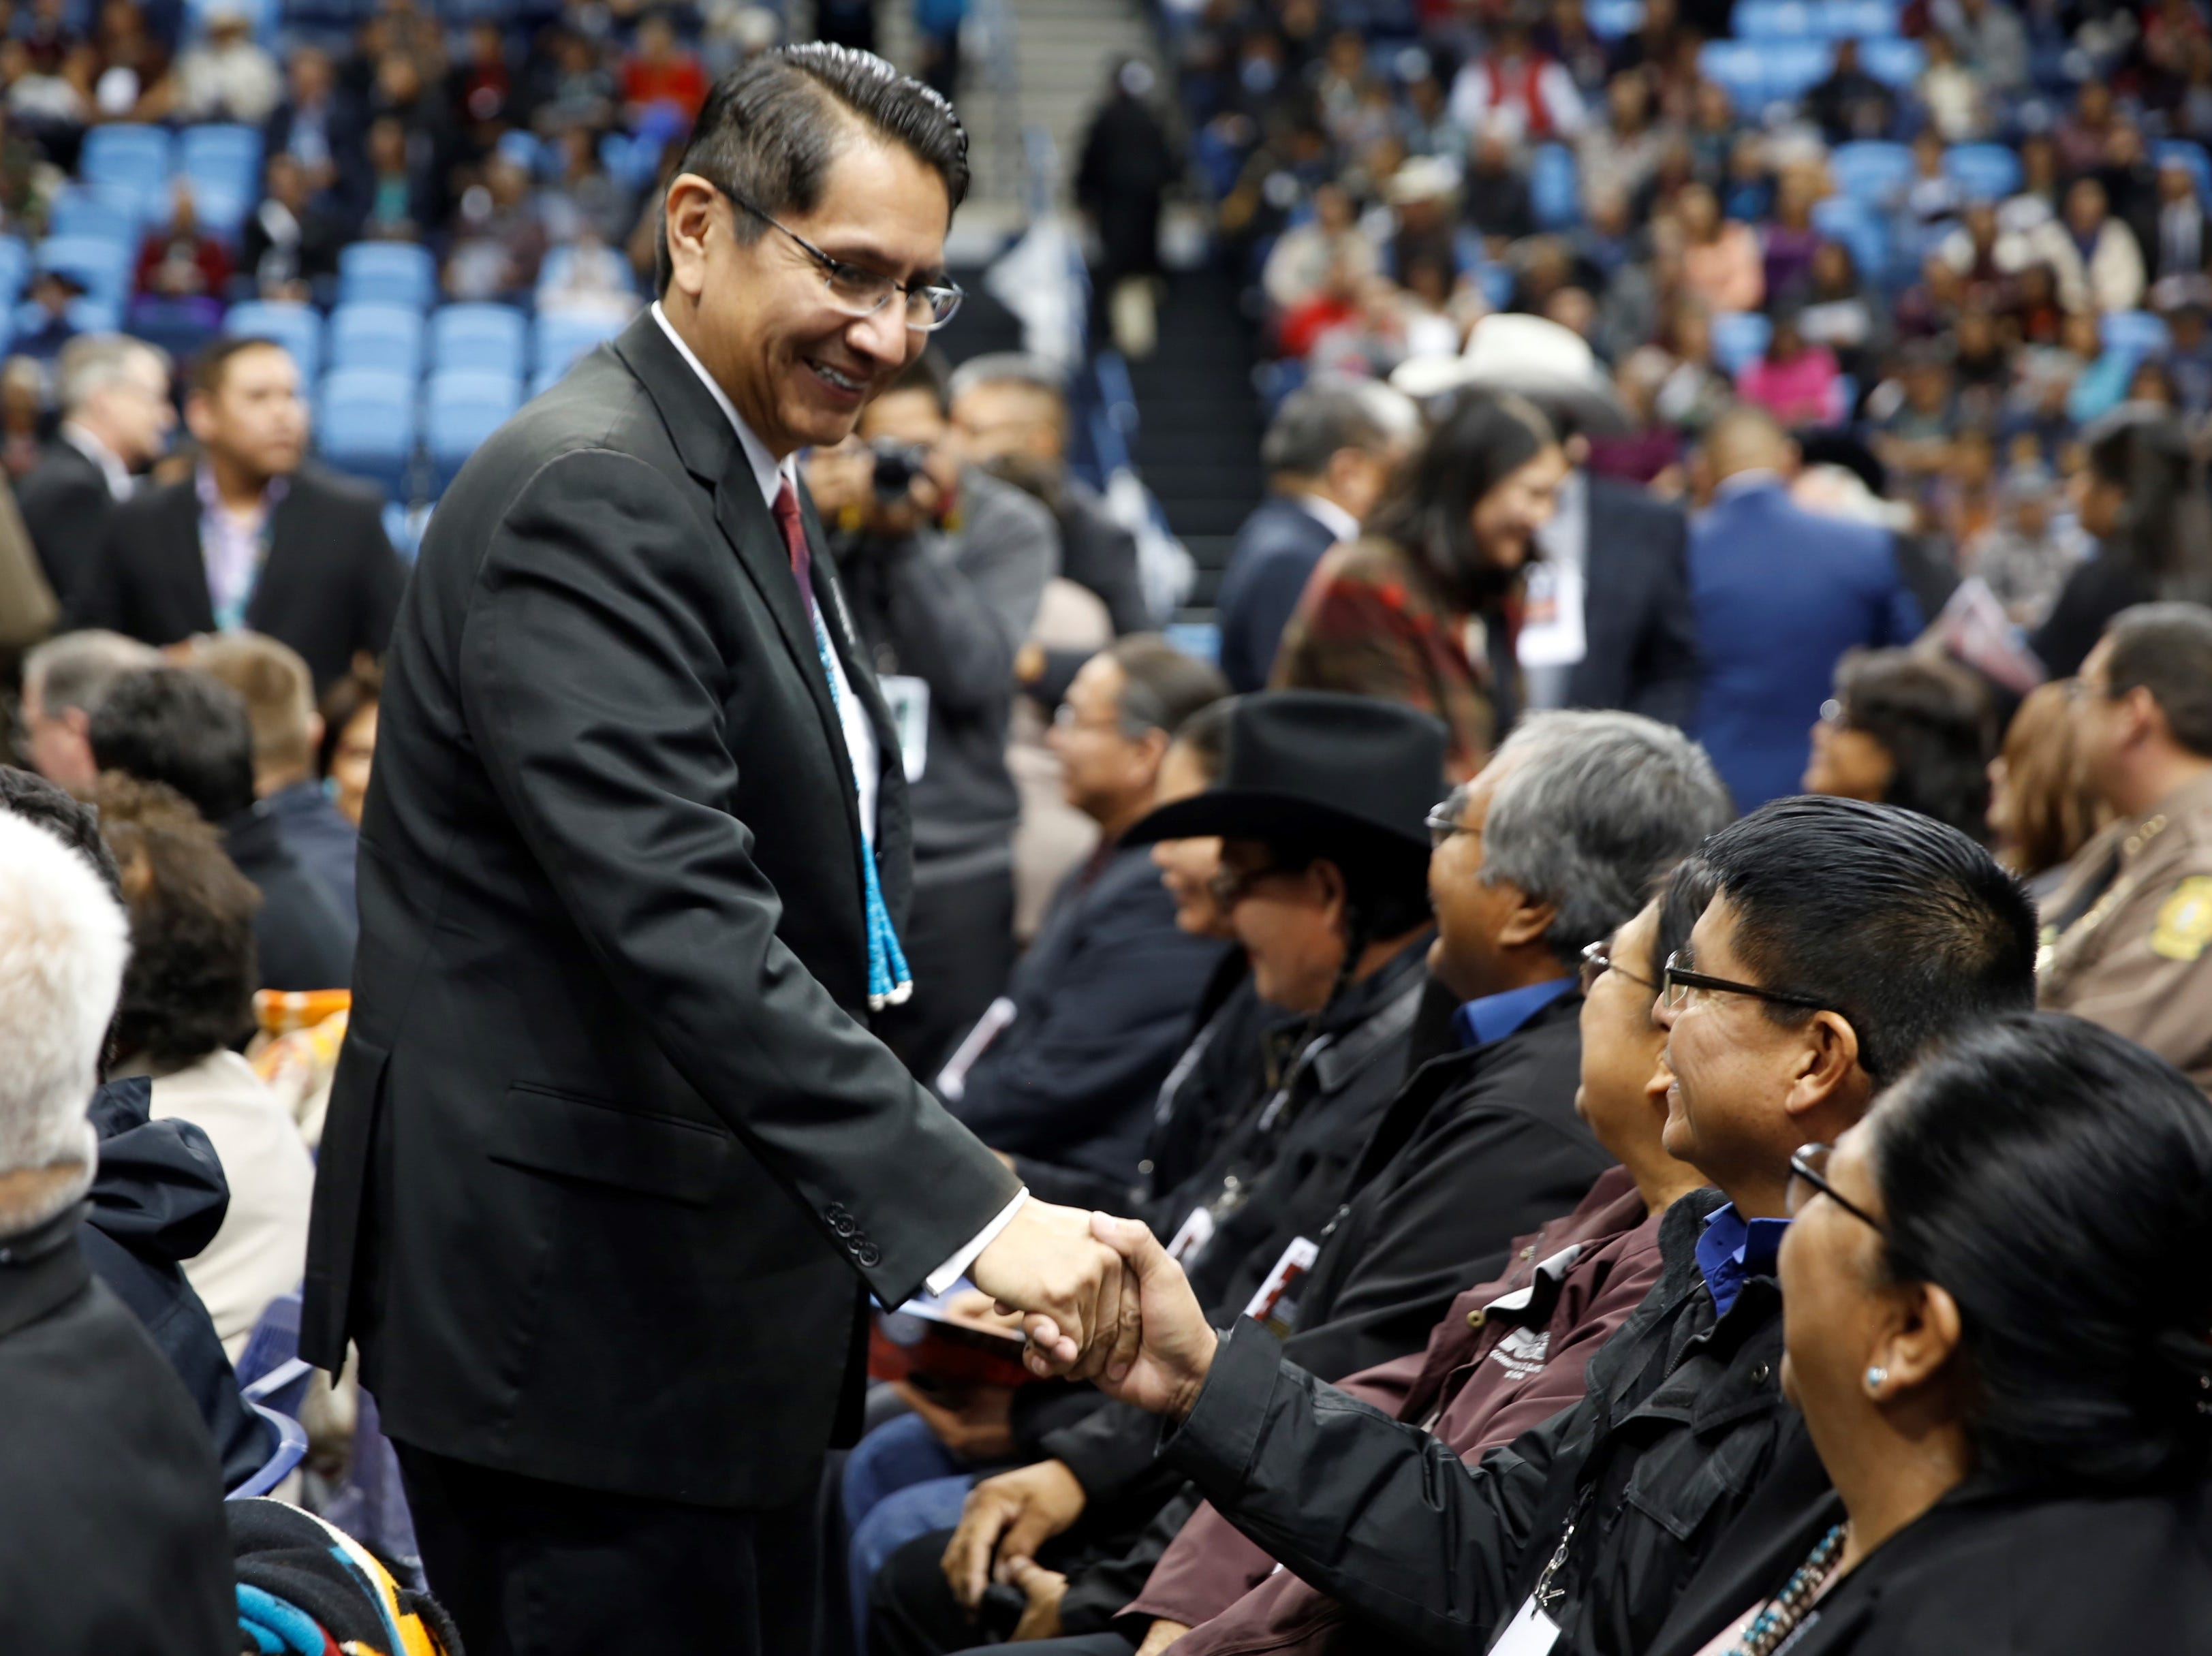 Jonathan Nez greets an attendee before the inaugural ceremony on Tuesday at the Bee Hółdzil Fighting Scouts Events Center in Fort Defiance, Ariz.